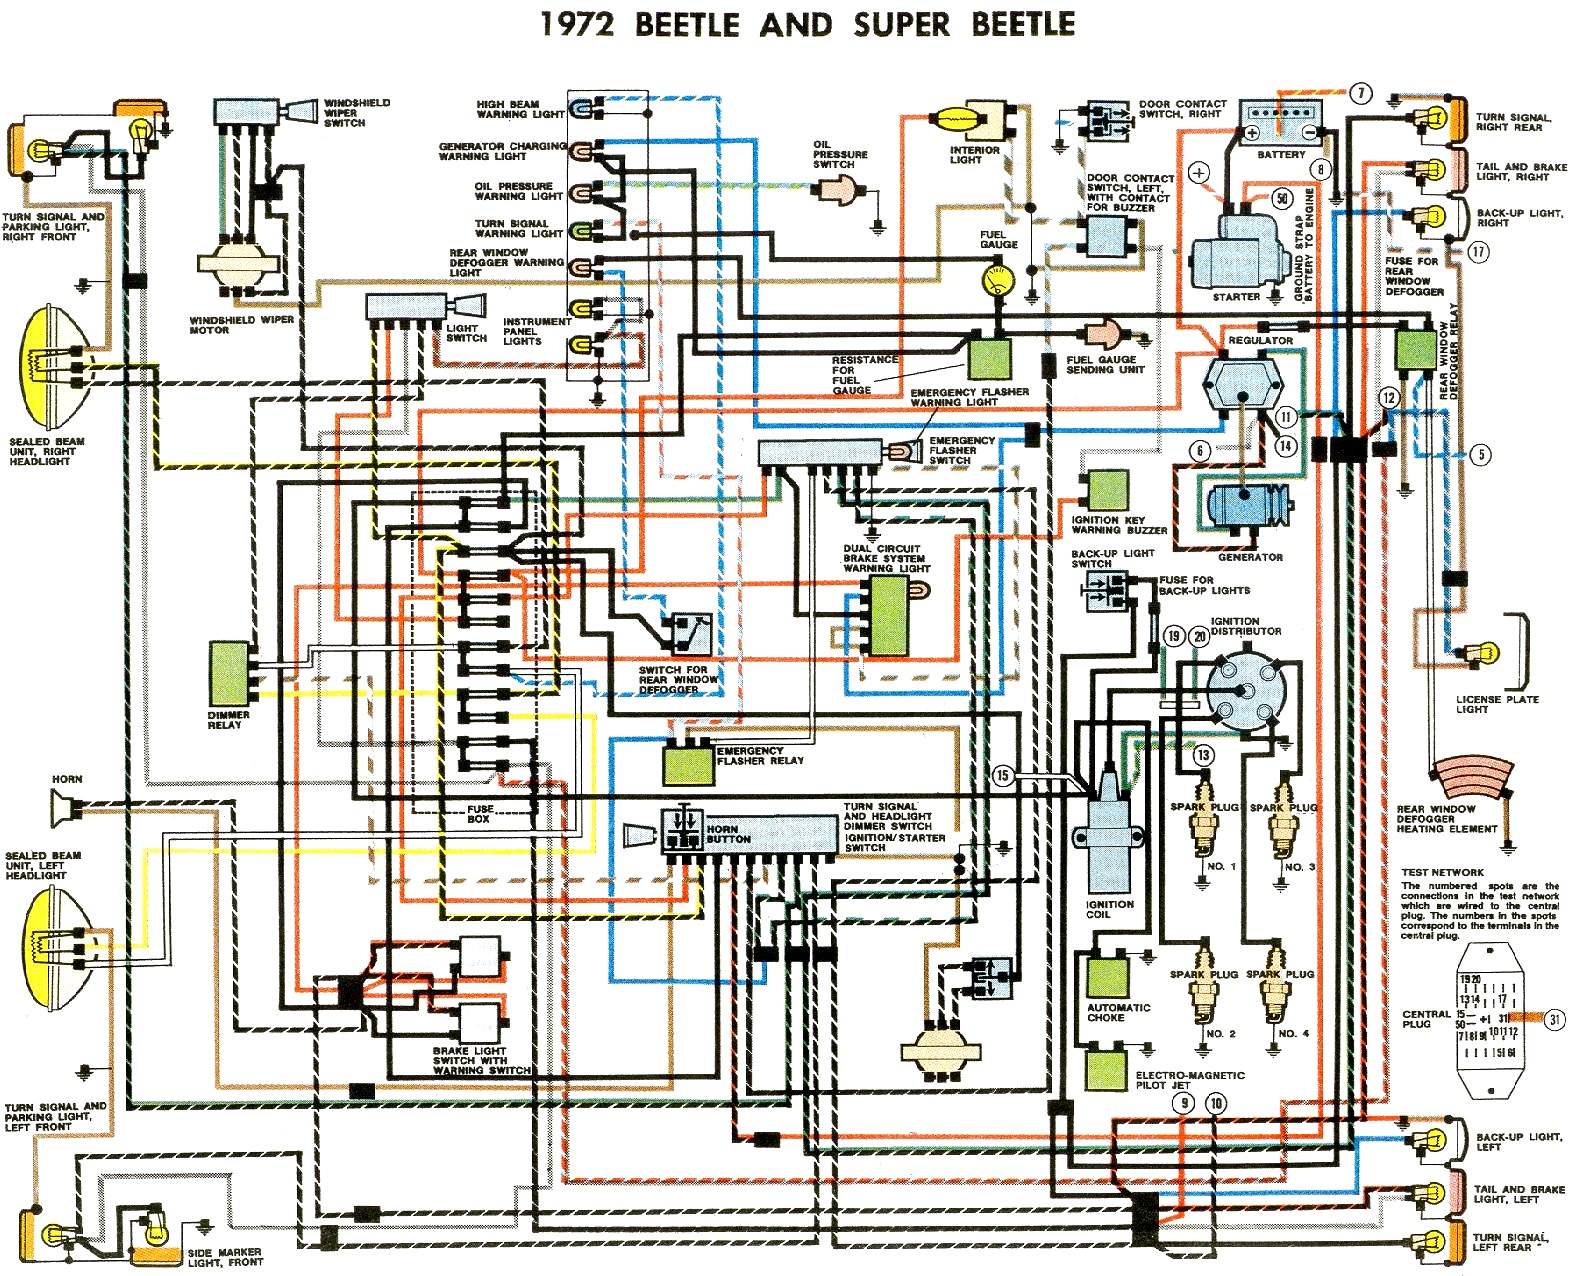 bug_72 1972 beetle wiring diagram thegoldenbug com 1978 vw bus fuse box diagram at aneh.co